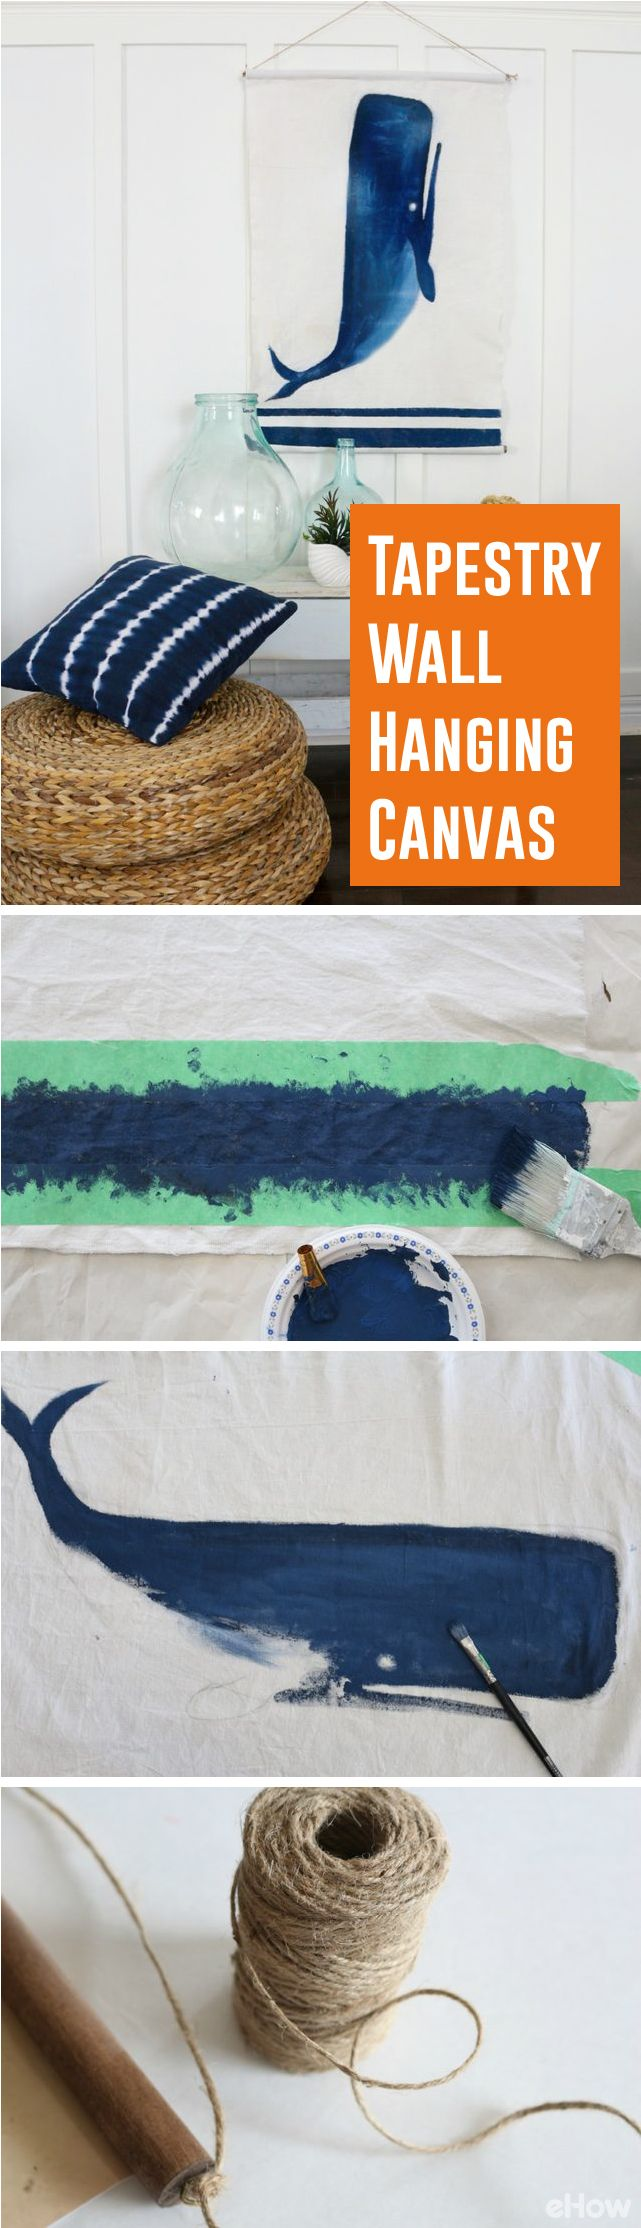 How to Make a Tapestry Wall Hanging Canvas Hanging